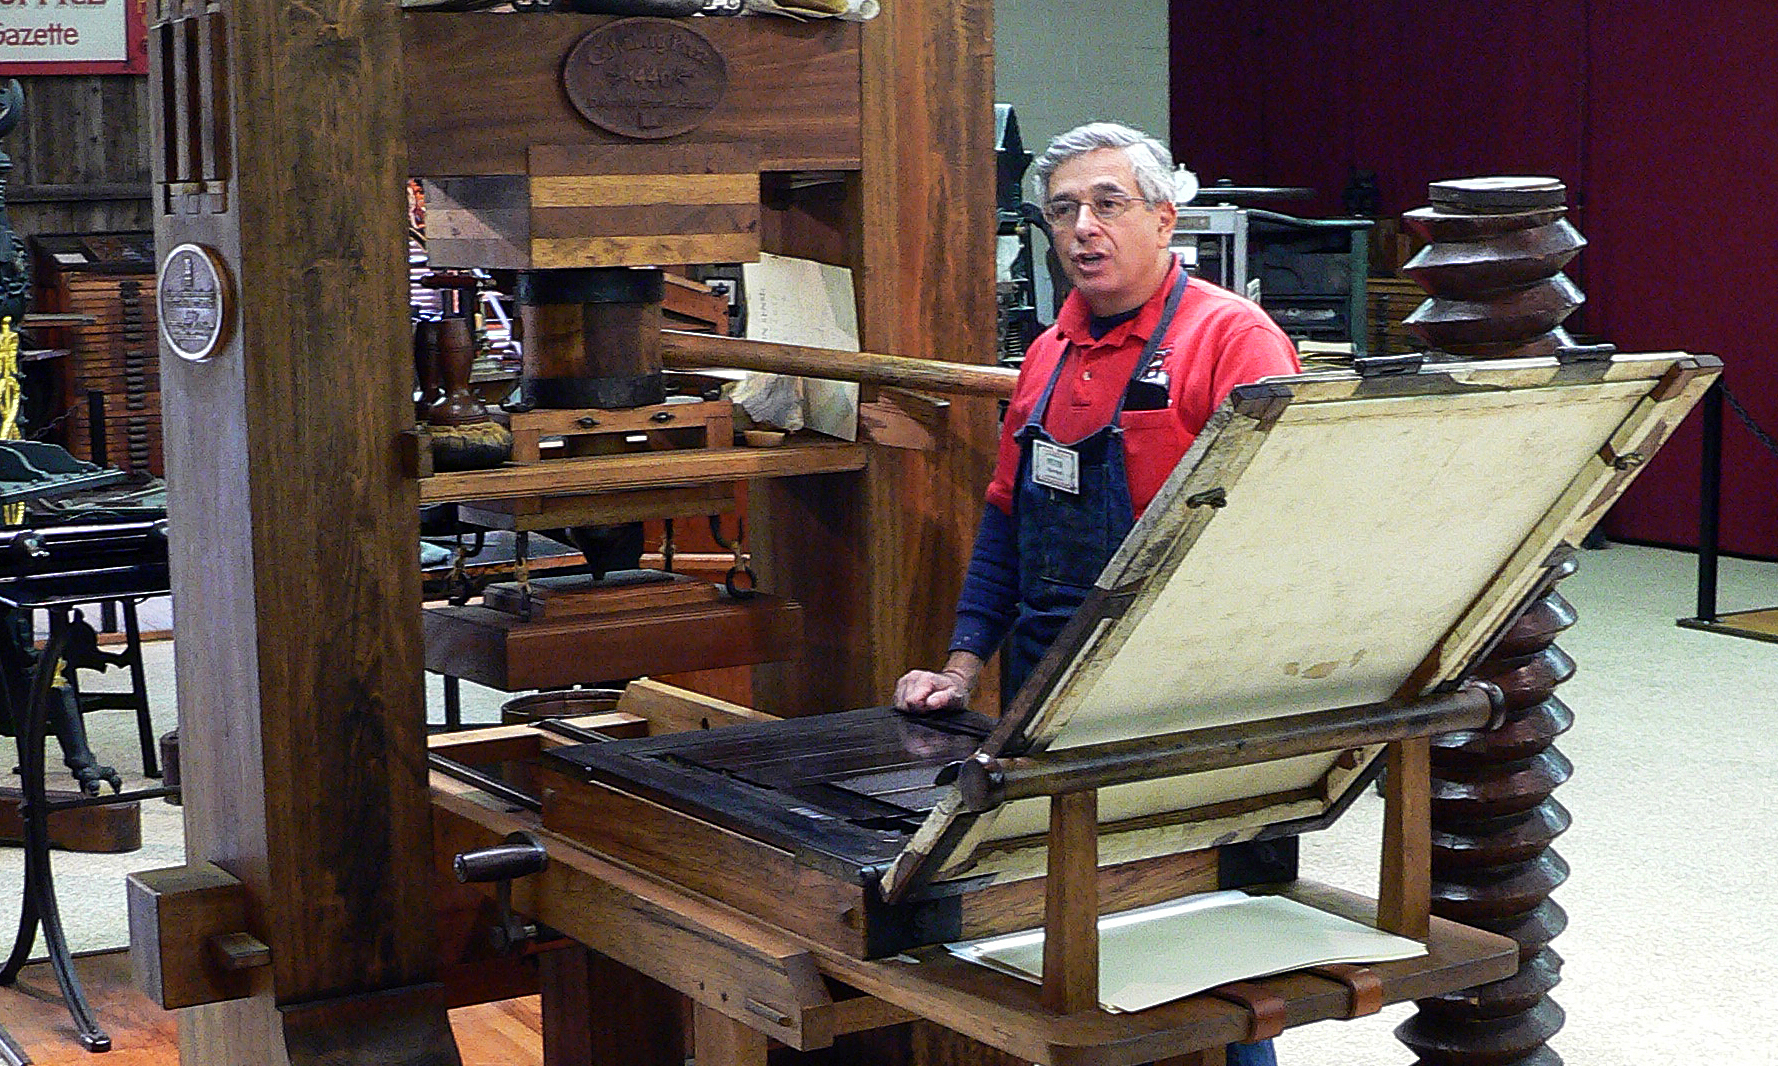 Peter Small demonstrating the use of the Gutenberg press at the International Printing Museum.